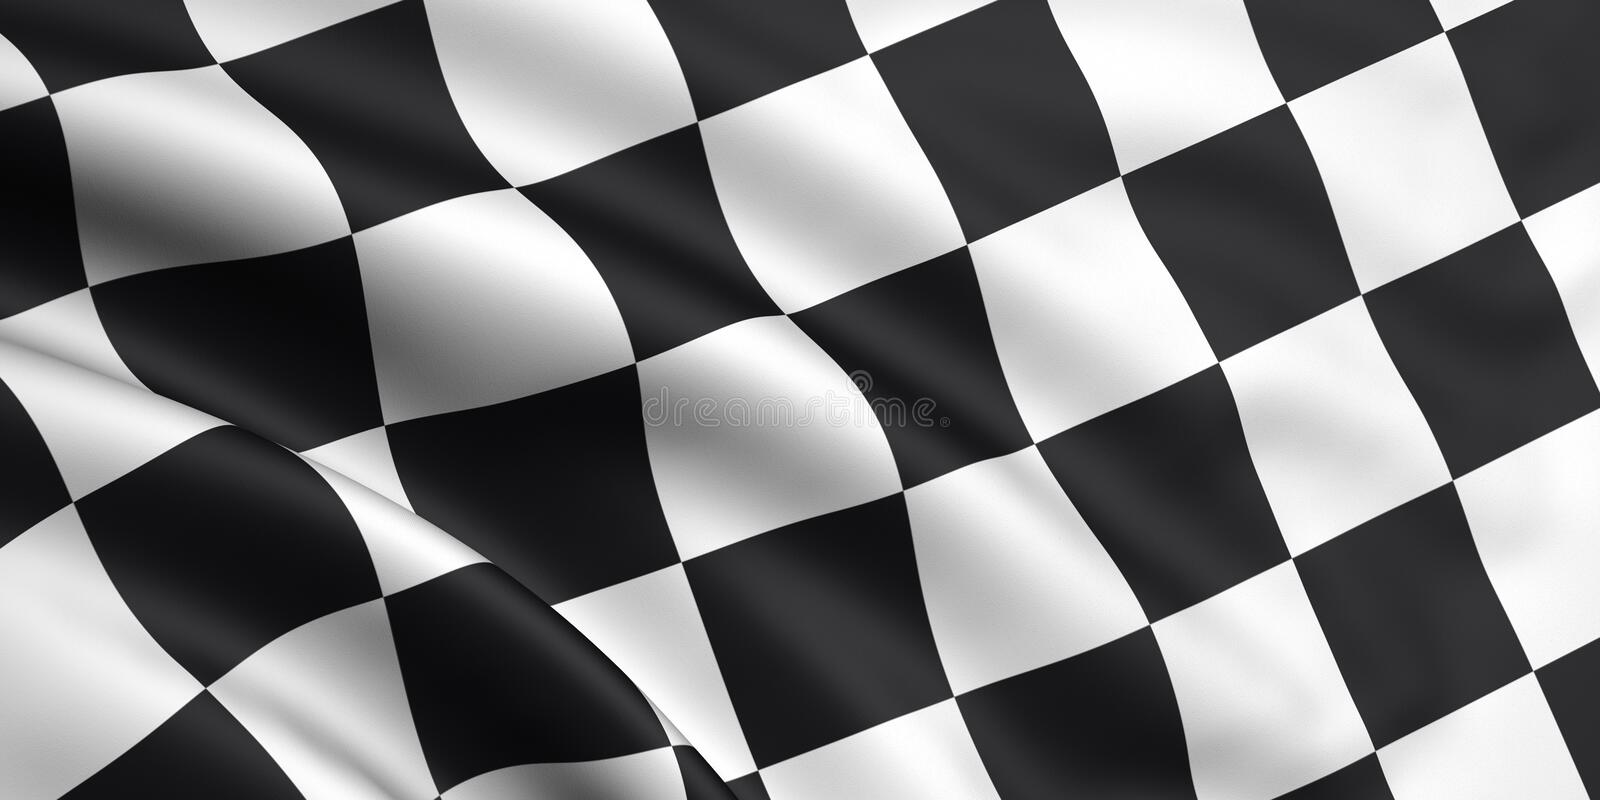 Checkered Flag stock illustration